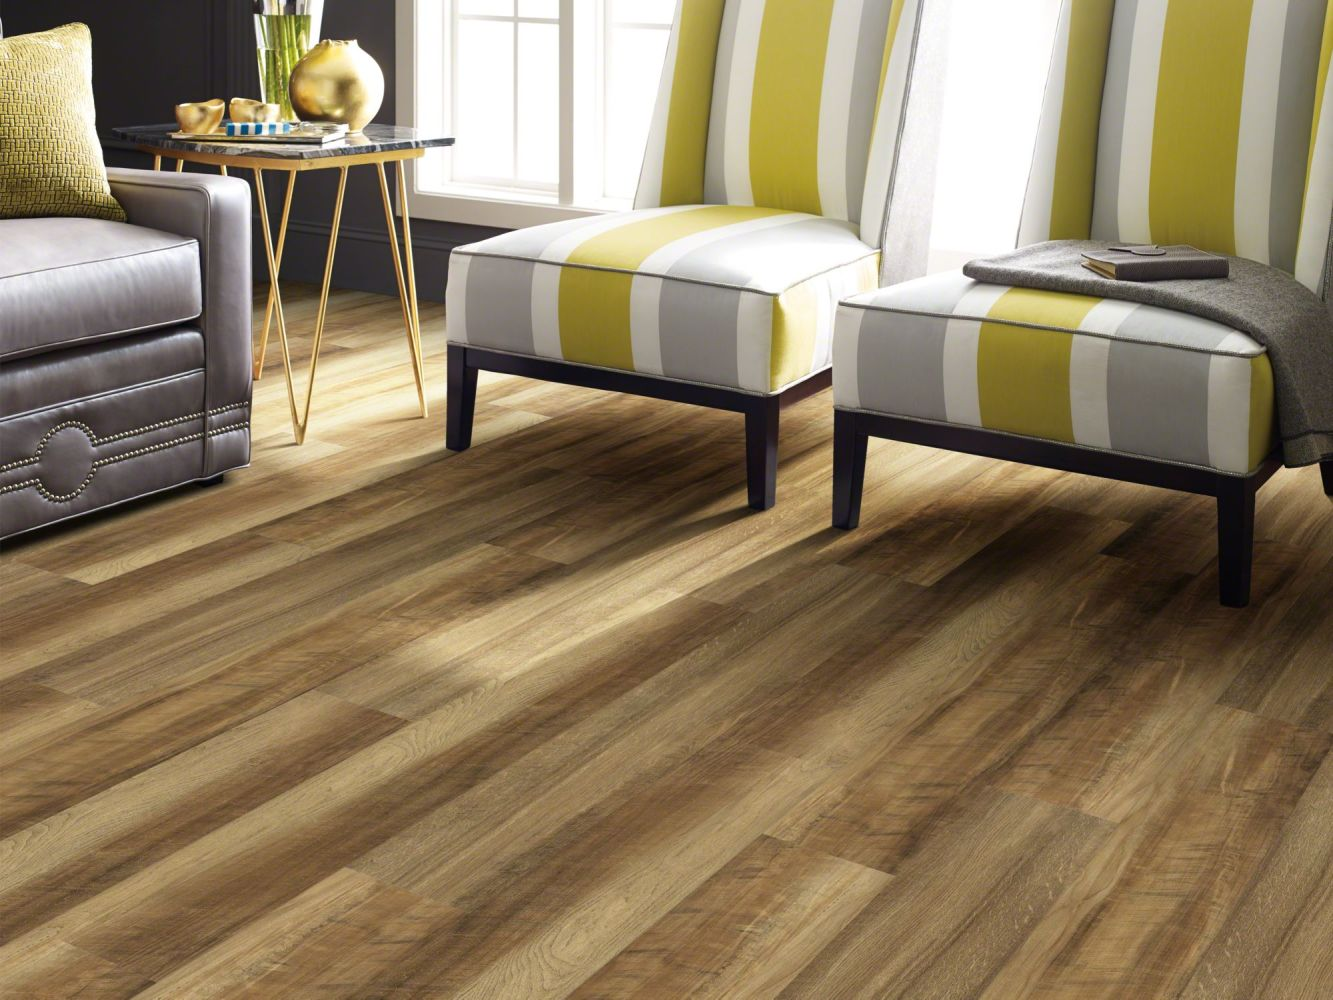 Shaw Floors Vinyl Residential Endura 512c Plus Tawny Oak 00203_0736V